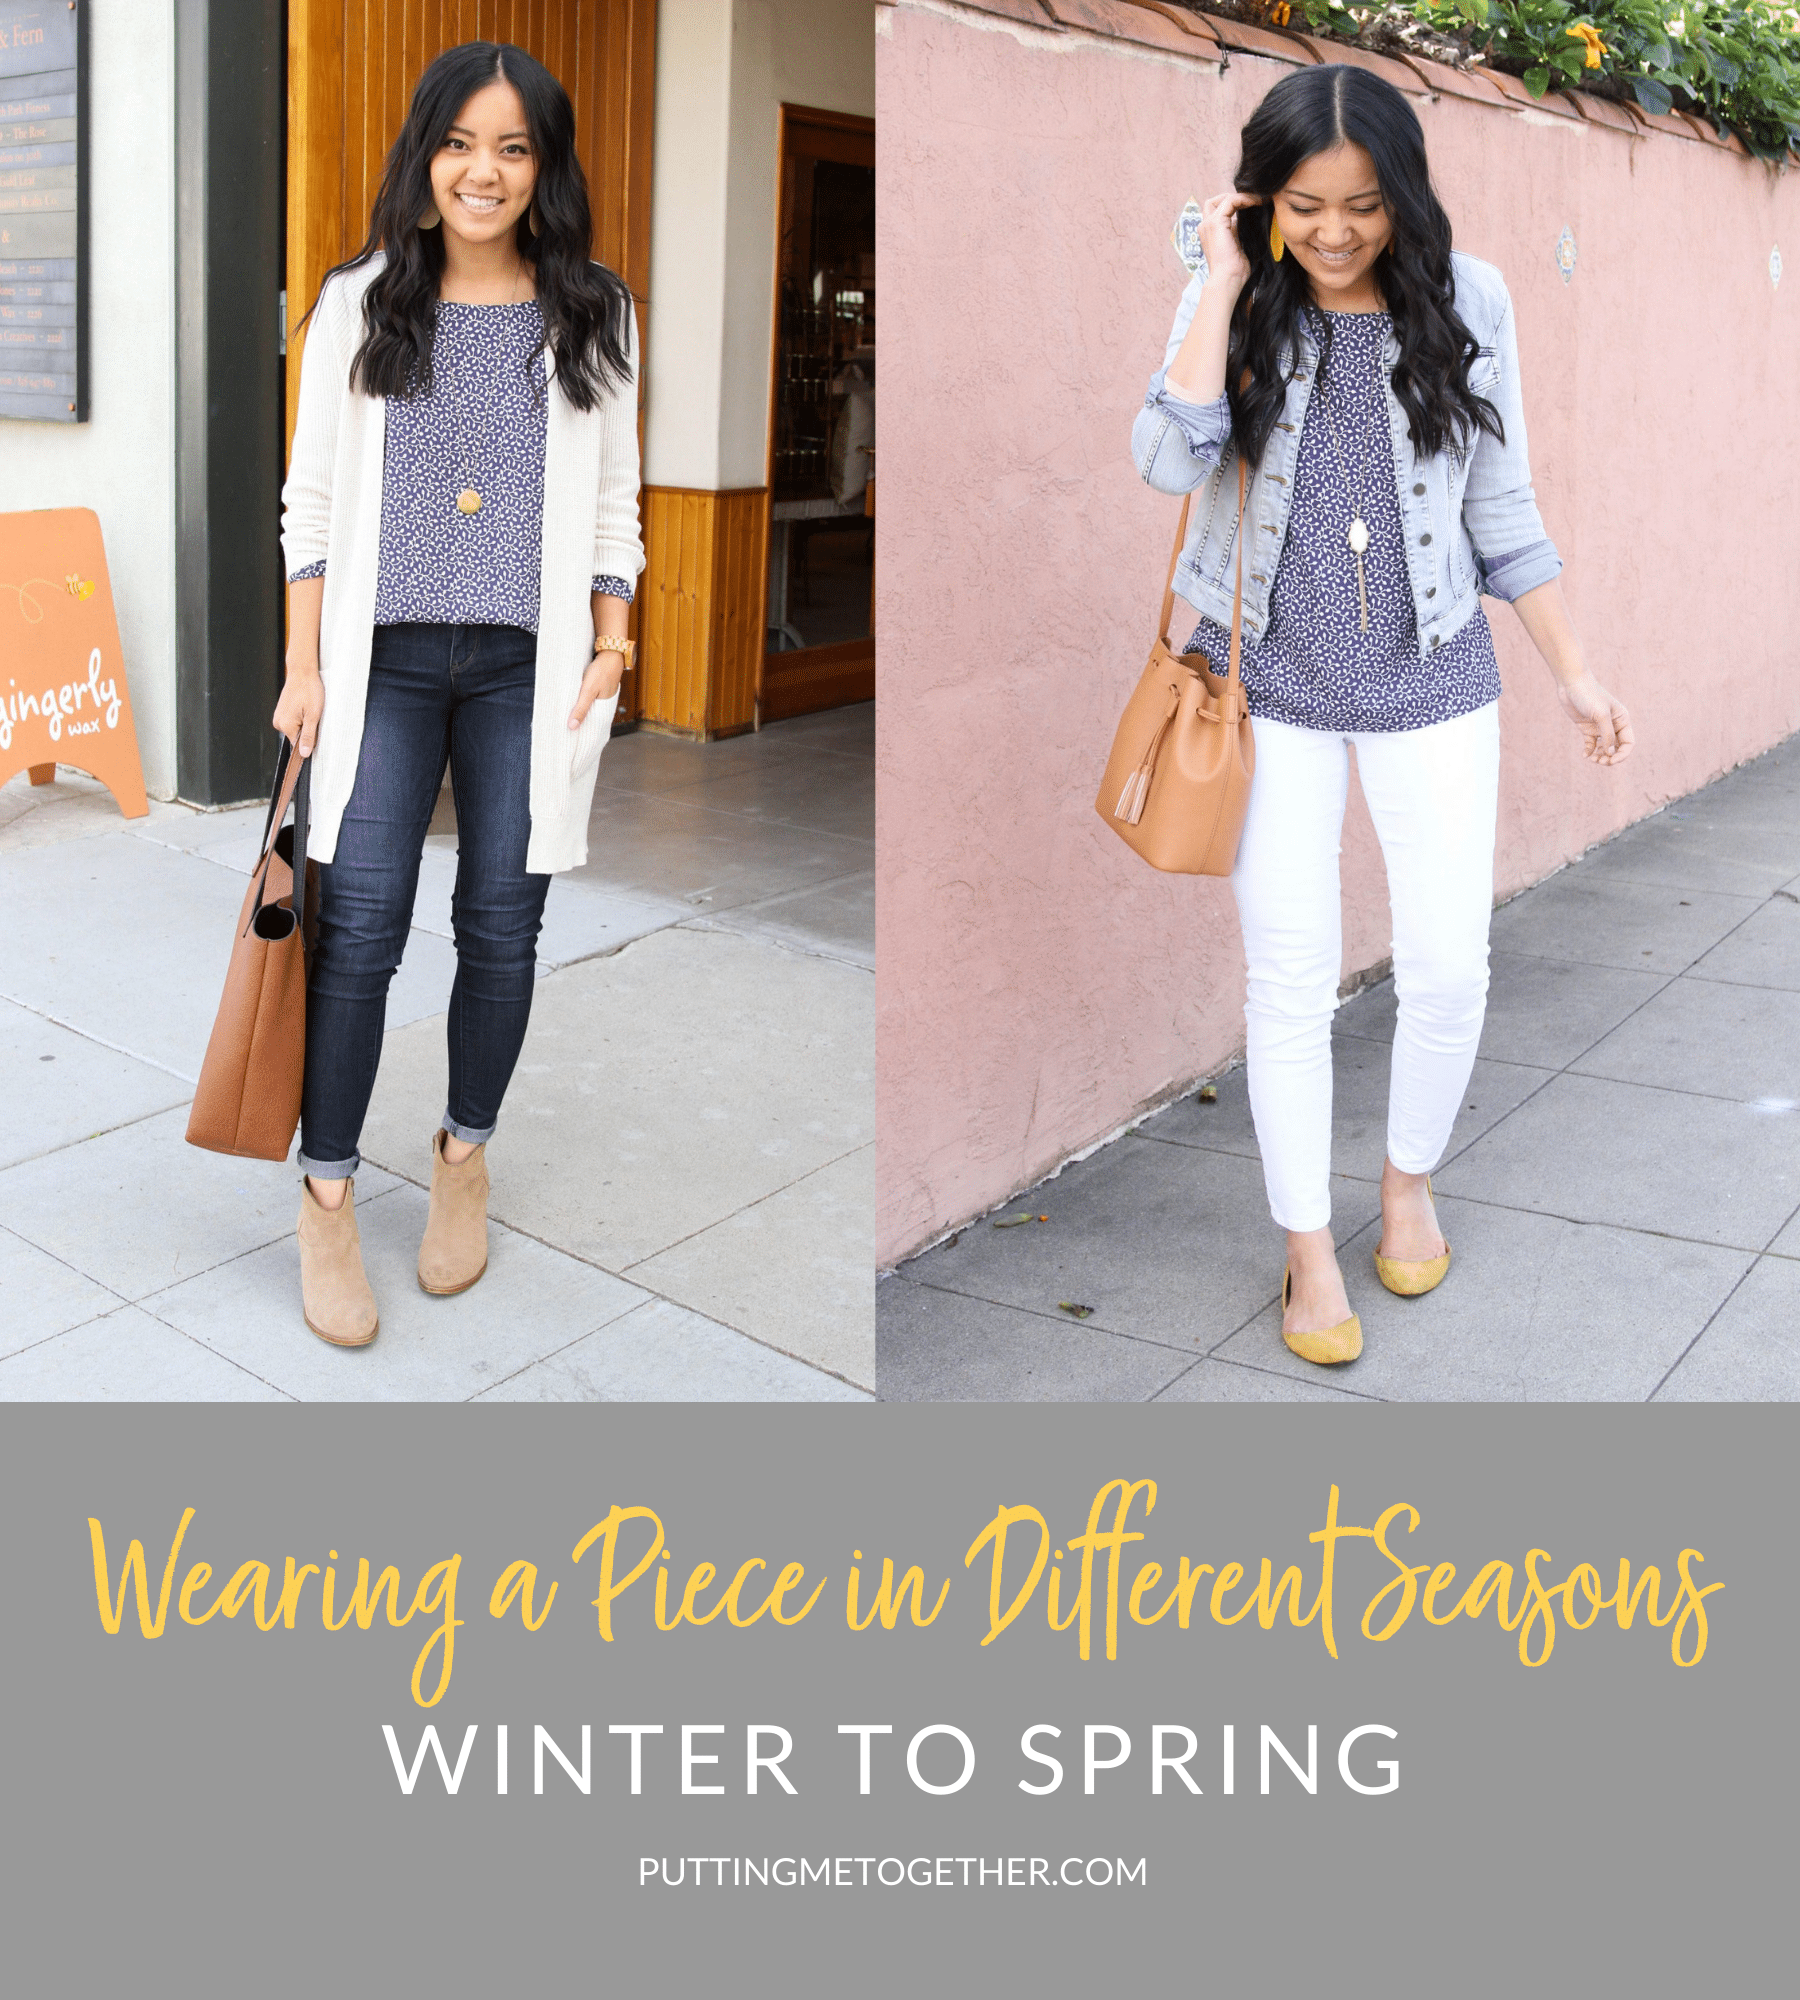 Wearing a Piece in Different Seasons, Winter to Spring